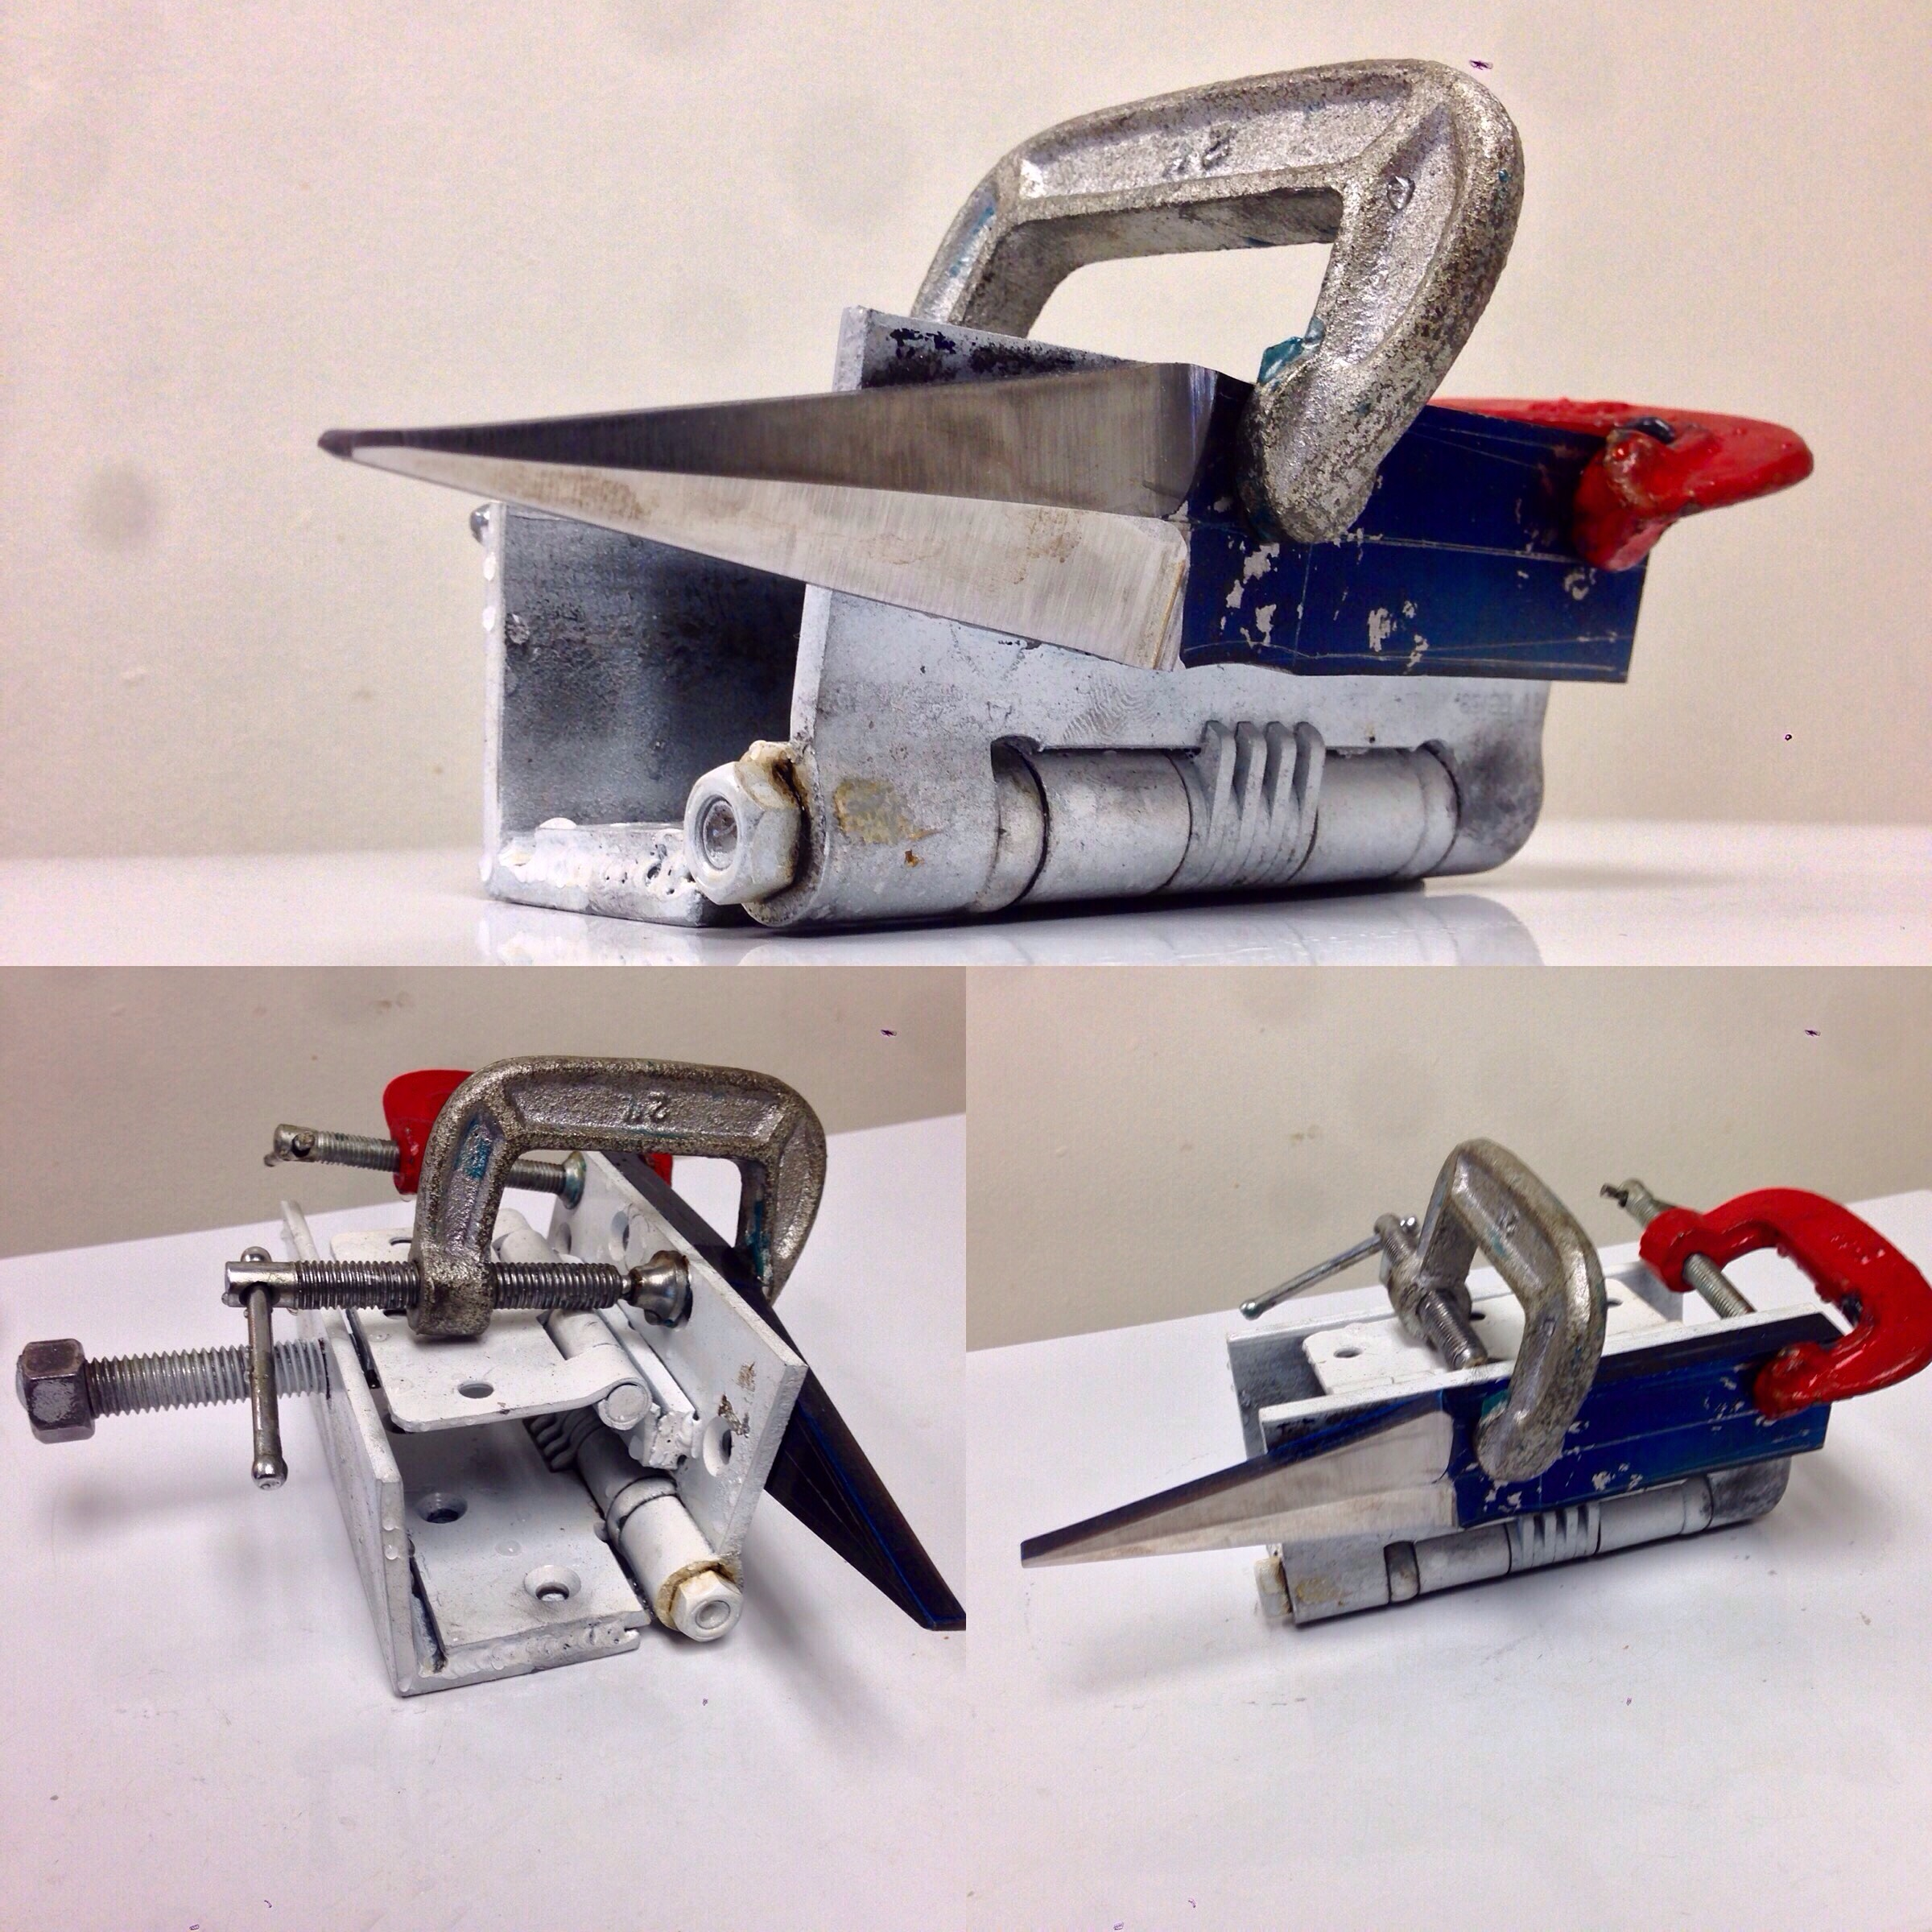 Homemade Knife Grinding Jig Autos Post